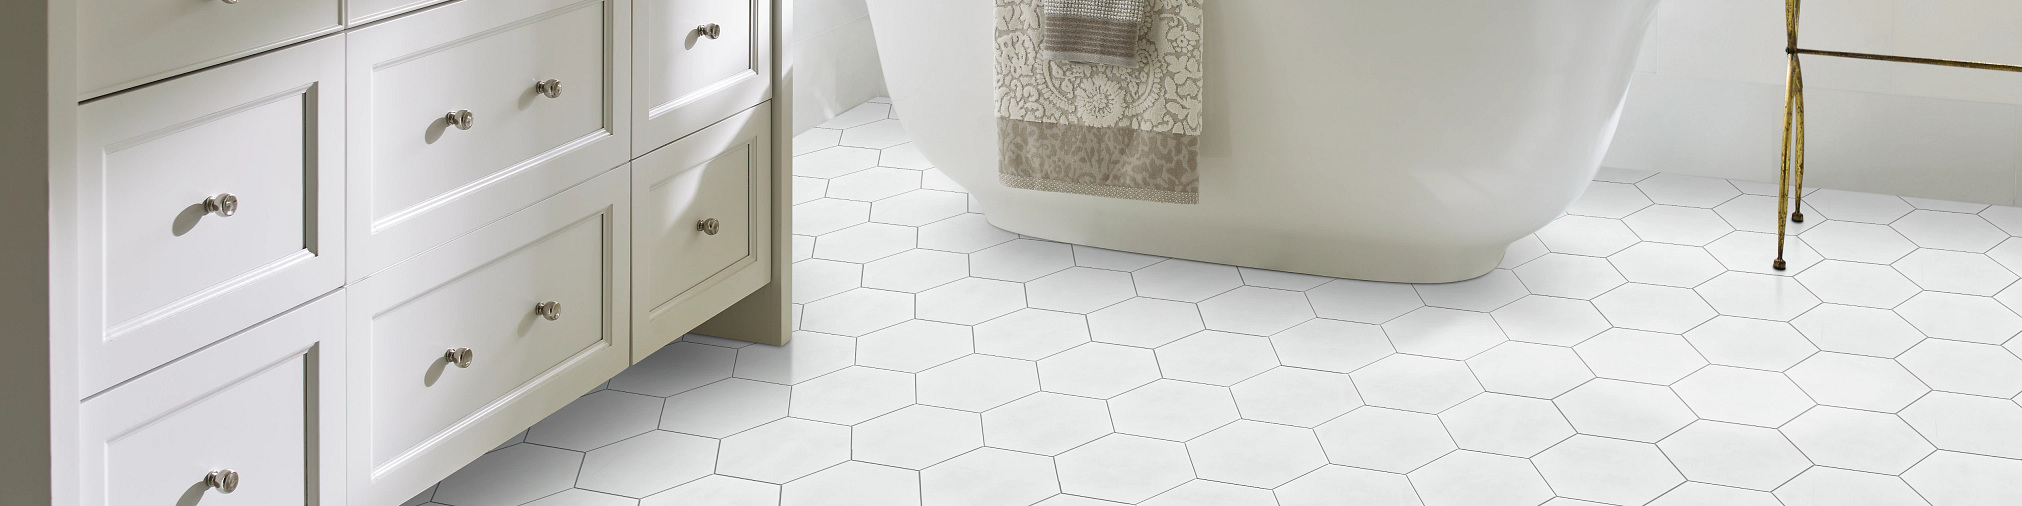 Tile-and-Stone-Revival-Hexagon-327TS-00100-Ivory-7x8-Bathroom-2020